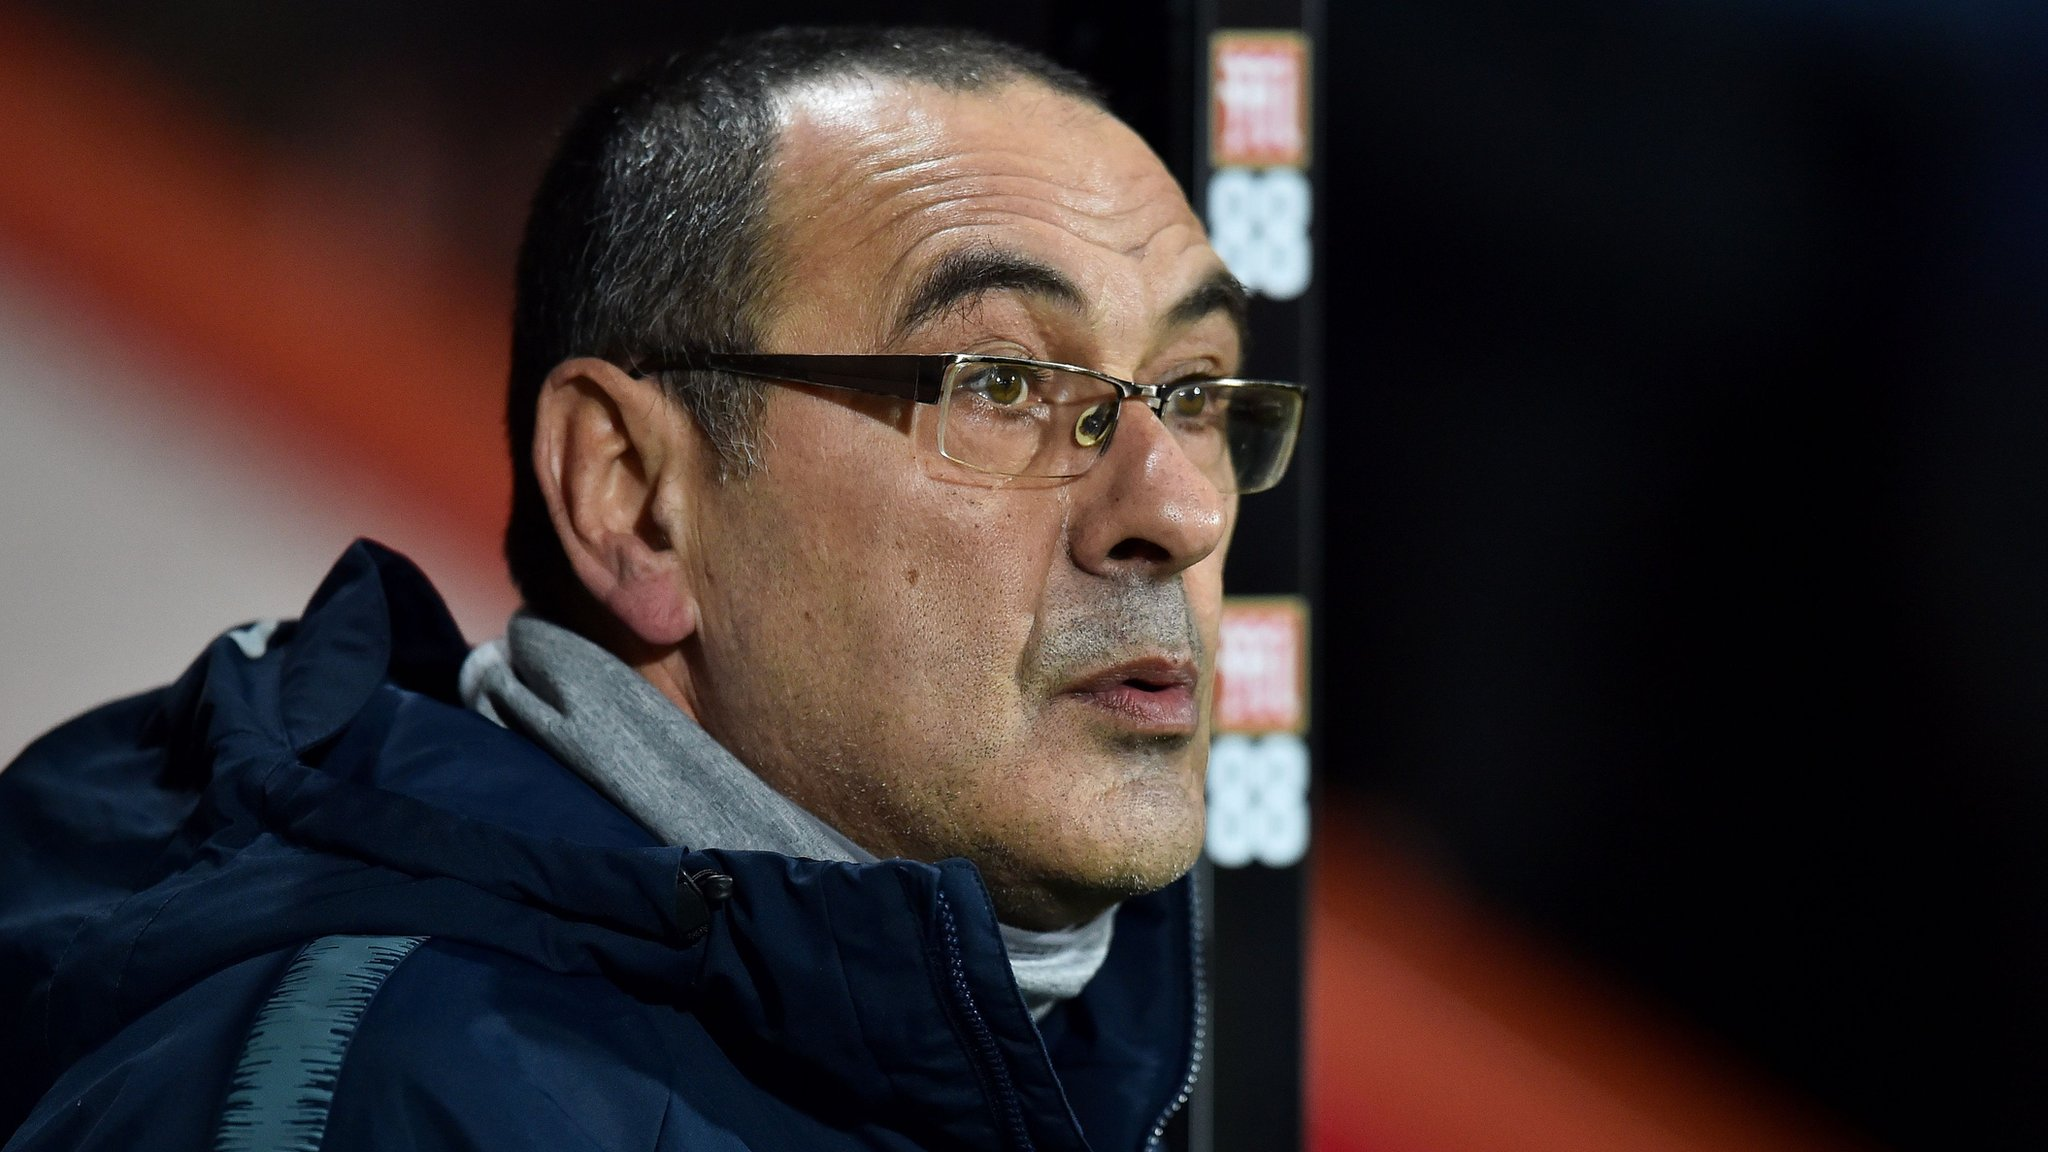 Maurizio Sarri: Why has Chelsea boss struggled to impose his methods in England?